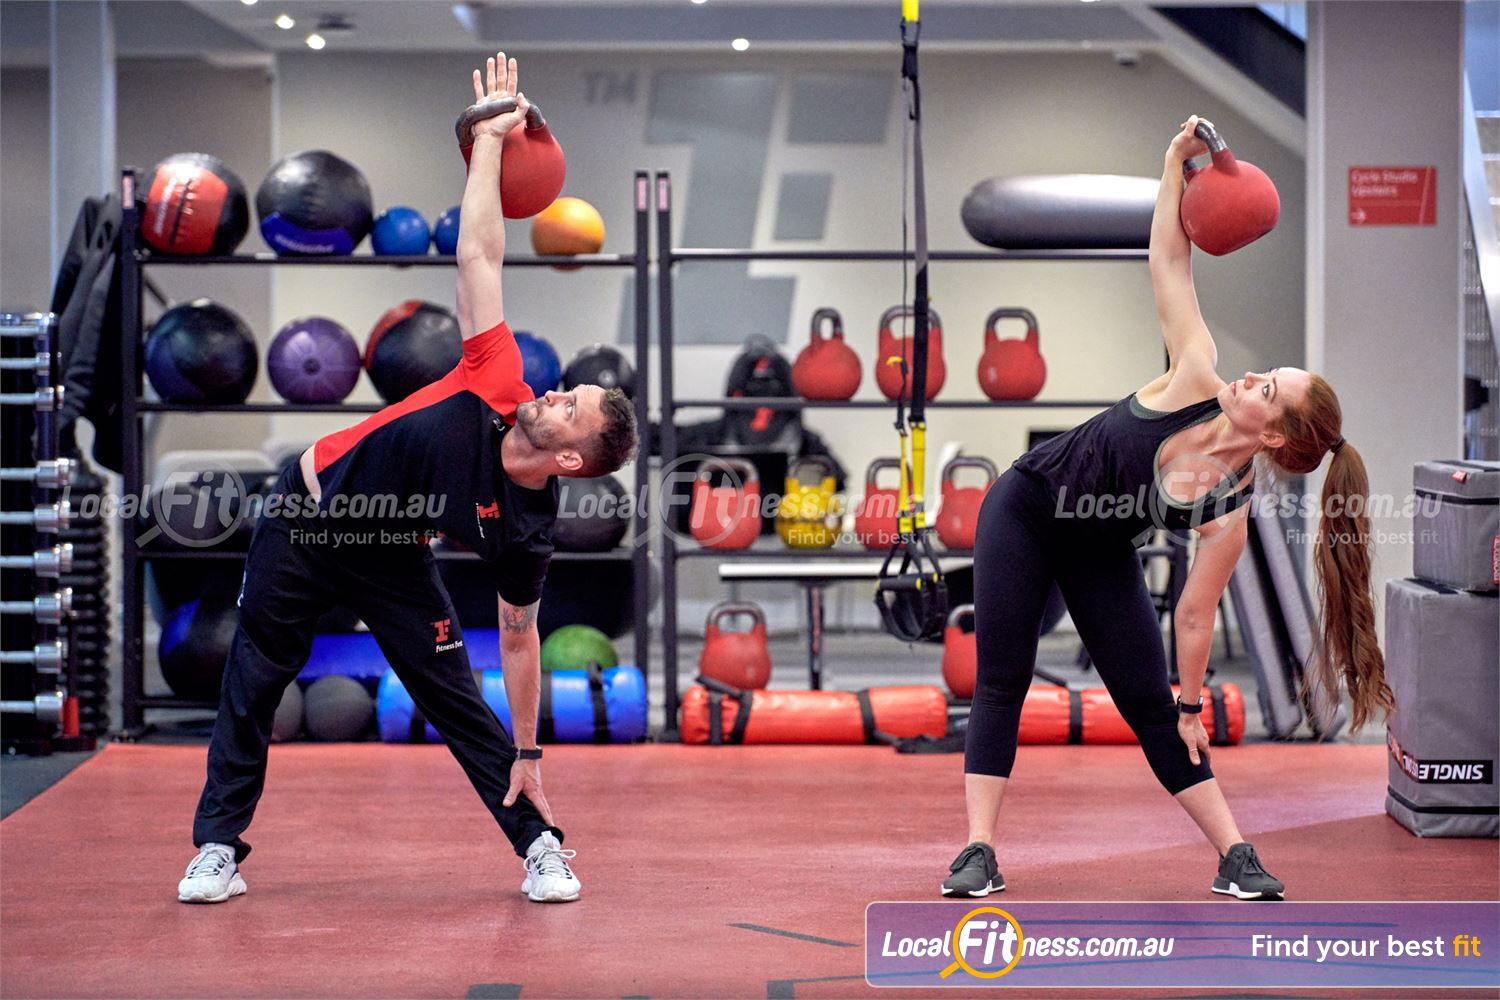 Fitness First Near Kogarah Kettlebell training is a great way to improve full body strength at Fitness First Rockdale.